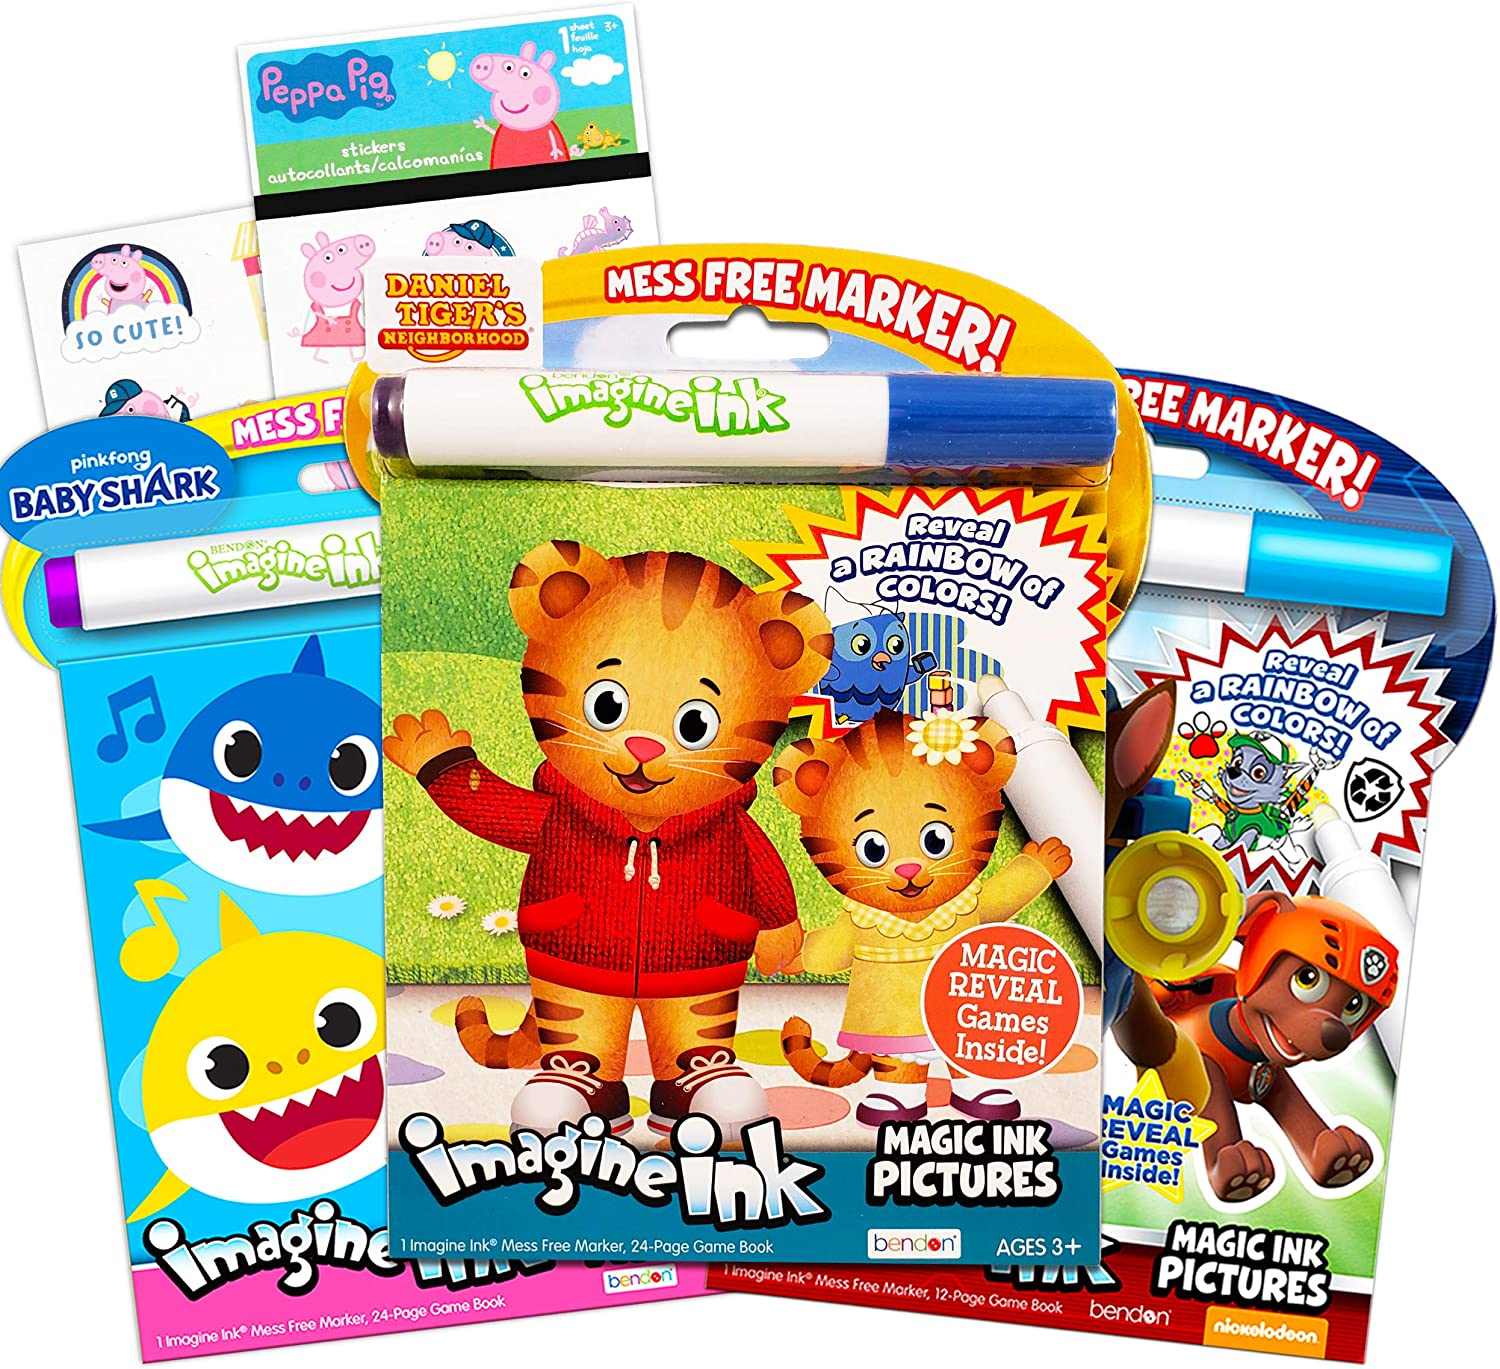 Imagine Ink Coloring Book Bundle ~ 3 Pack No Mess Magic Ink Activity Books Featuring Daniel Tiger, Paw Patrol, and Baby Shark with Peppa Pig Stickers